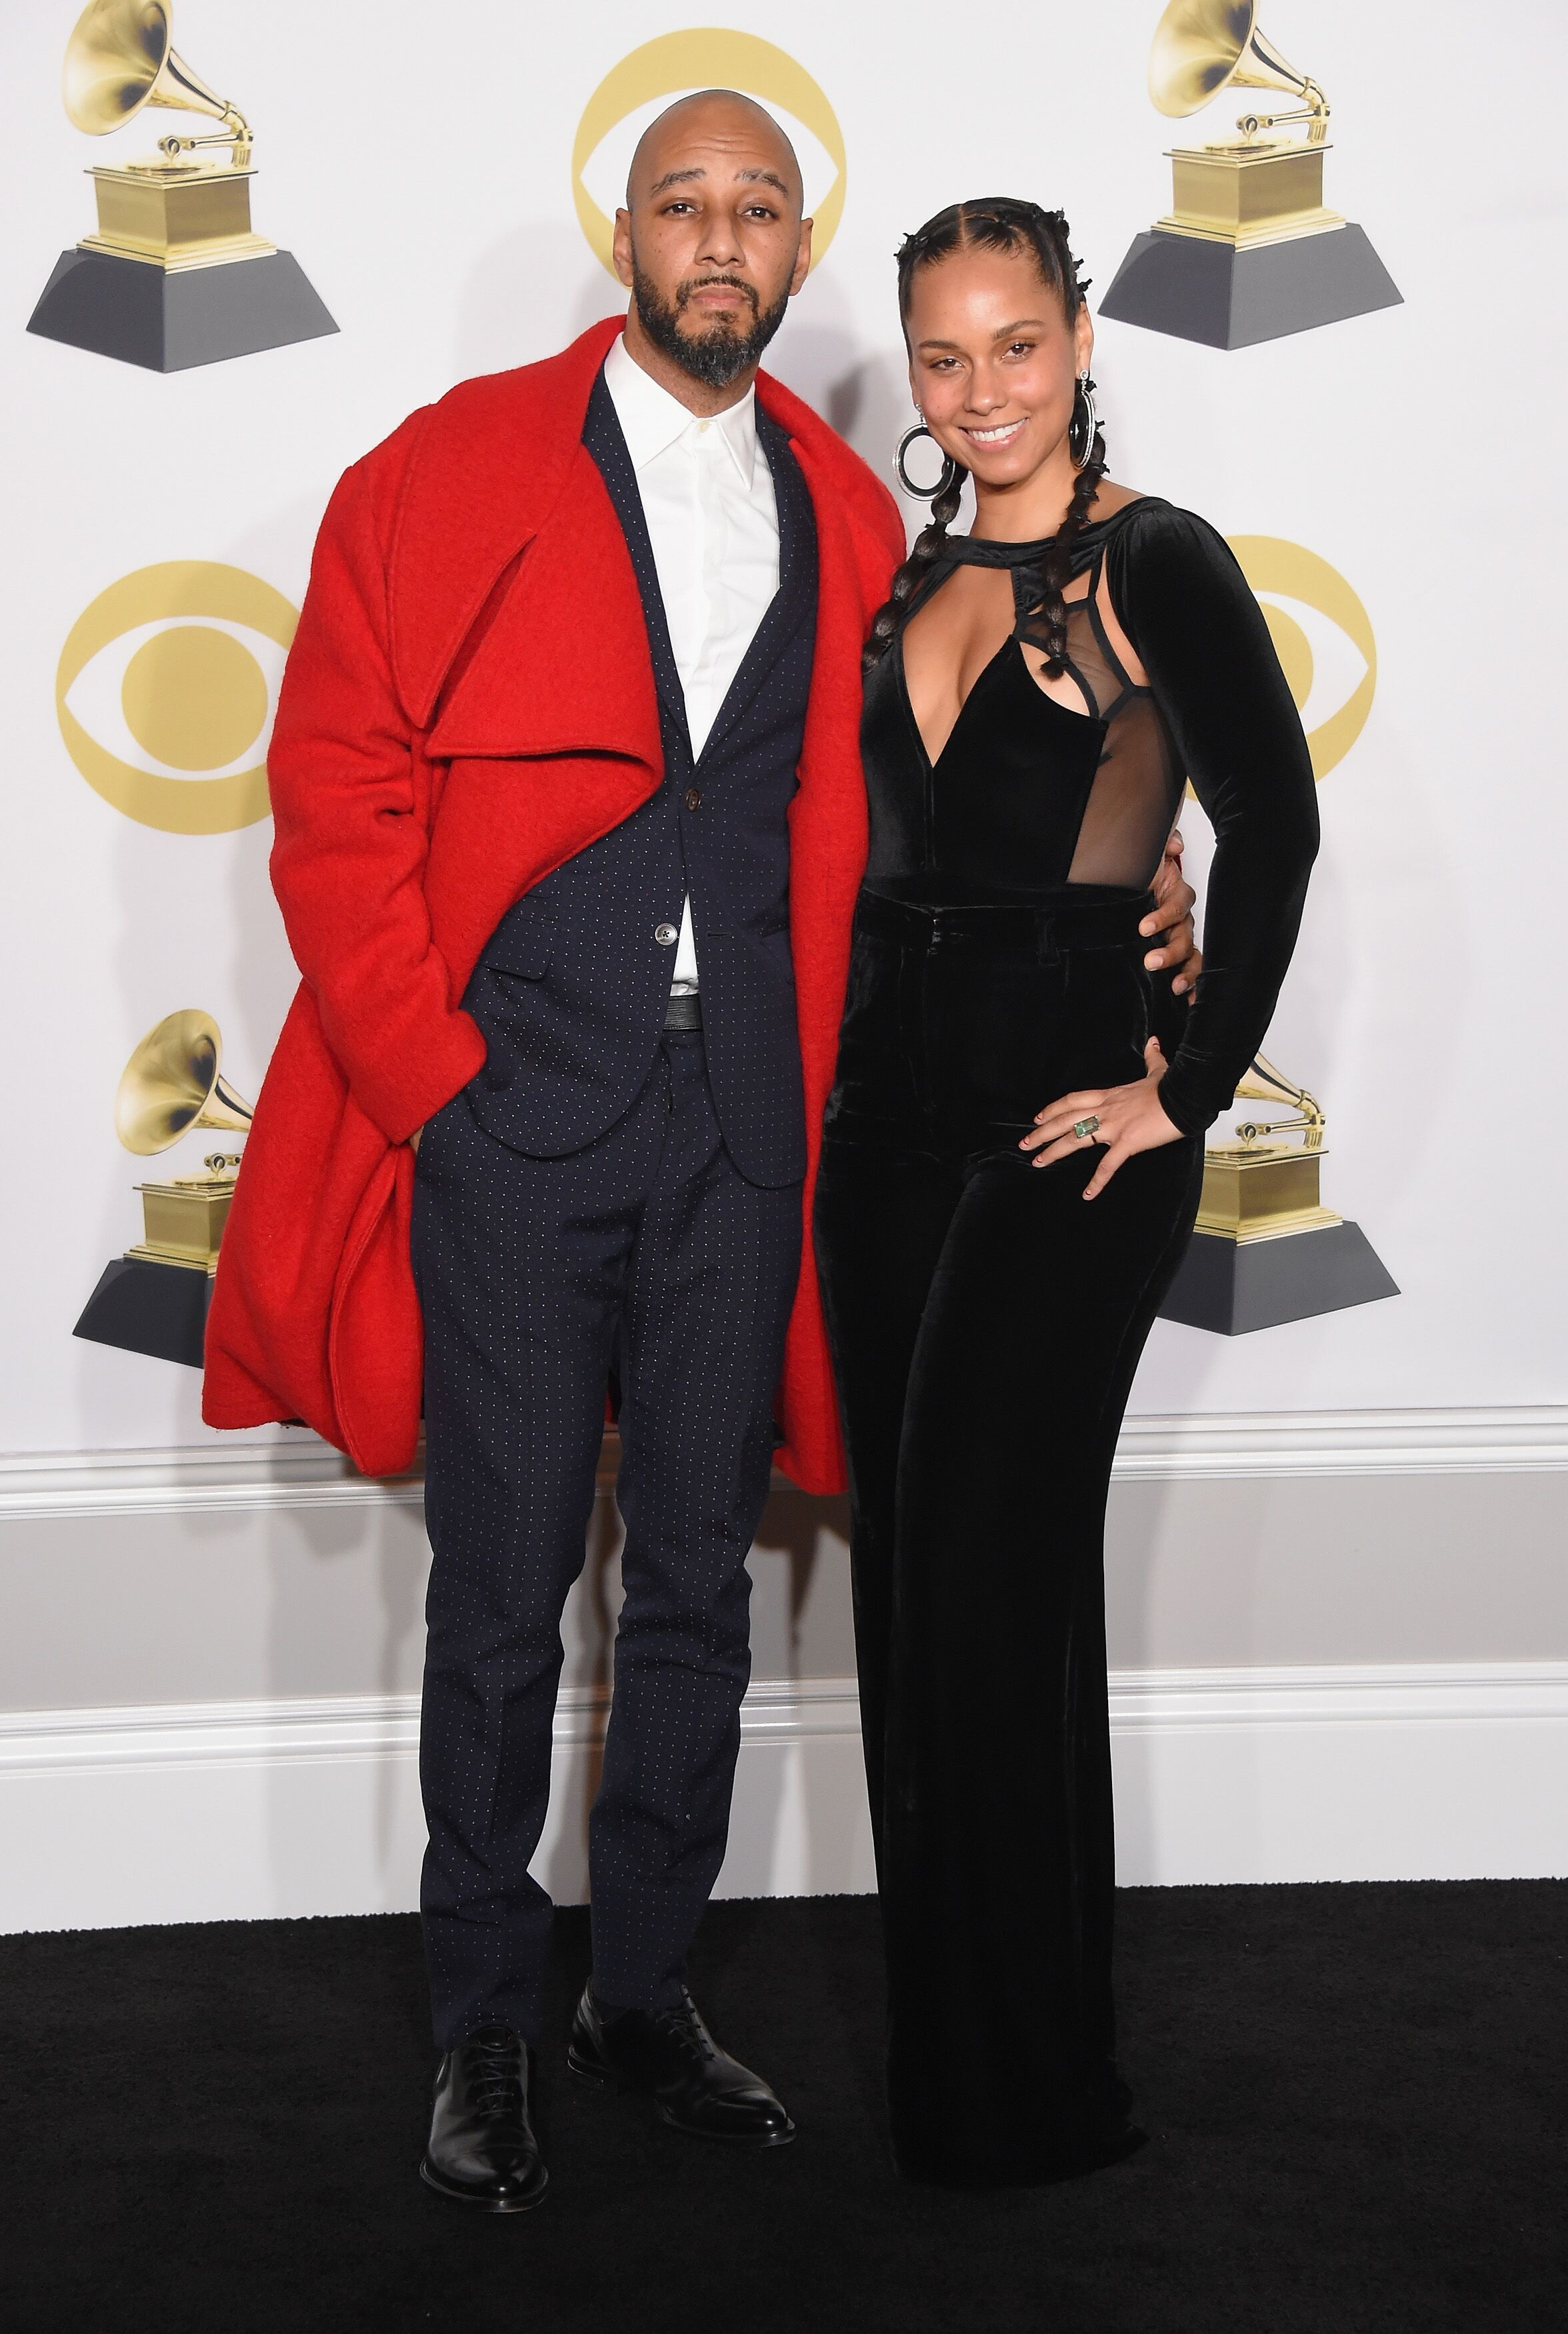 Swizz Beatz and Alicia Keys at the 60th Annual GRAMMY Awards in 2018   Source: Getty Images